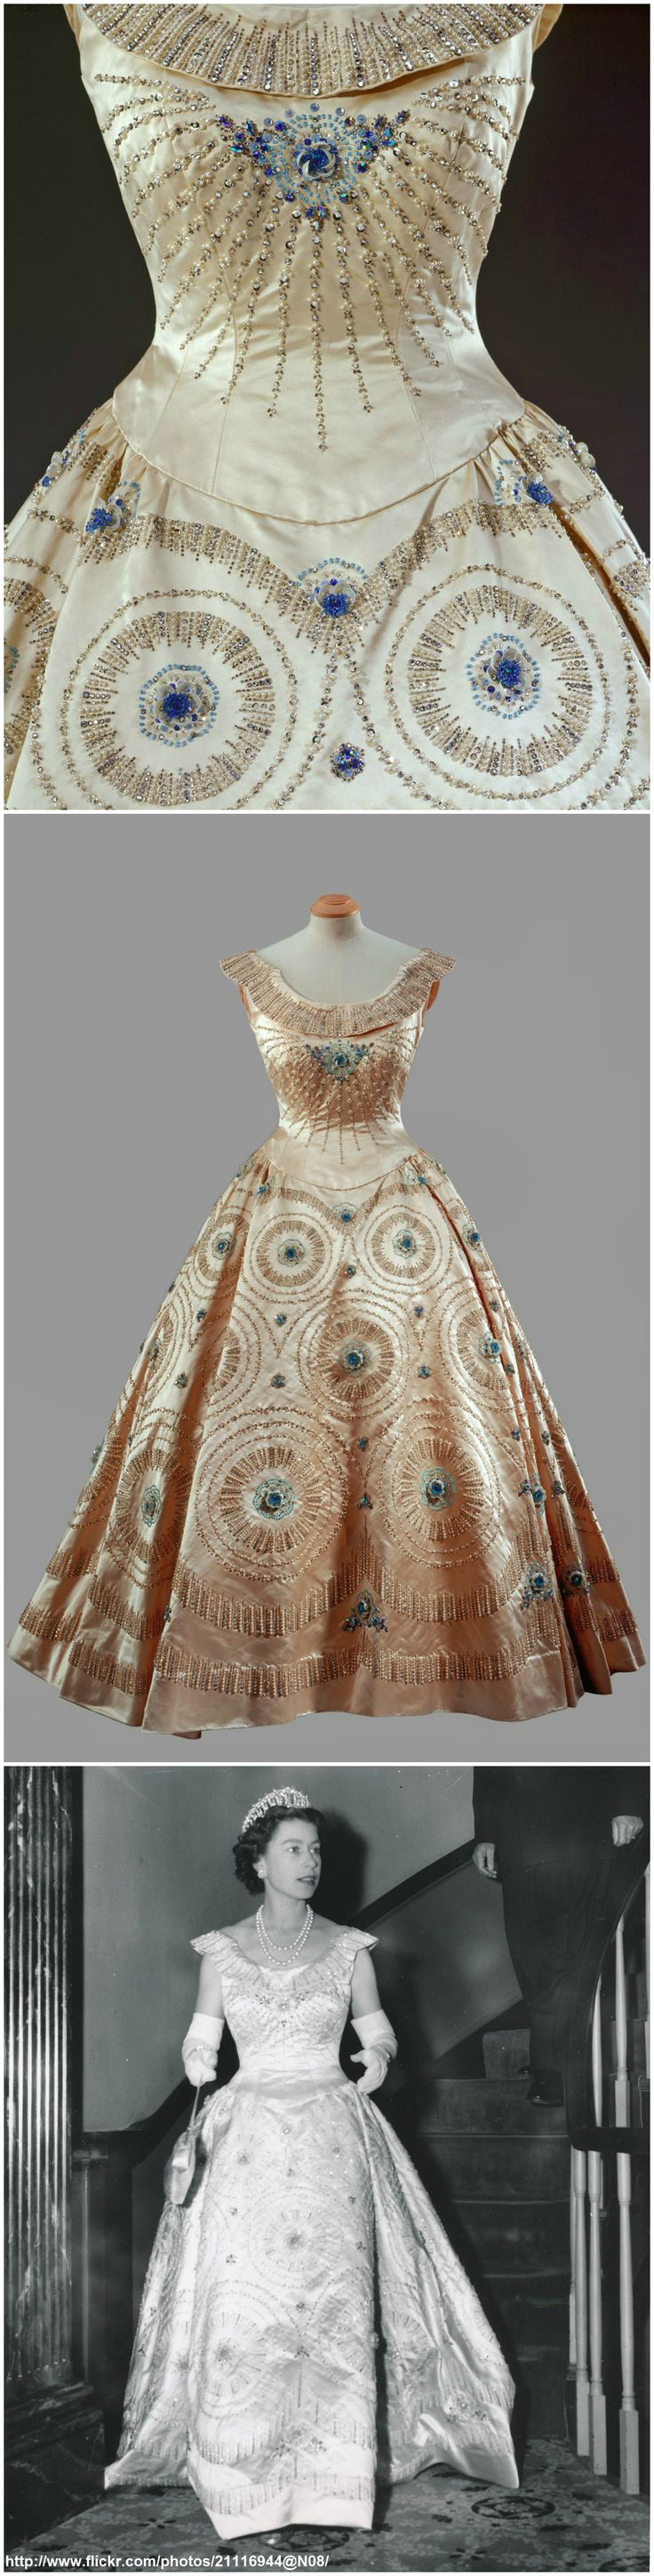 "Cream crinoline gown with blue embroidery, by Norman Hartnell. Worn by Queen Elizabeth II during the Tour of Canada and the United States of America, October 1957. The Royal Collection © 2008, Her Majesty Queen Elizabeth II. Black-and-white photo ""Queen Elizabeth in Williamsburg, dated October 16, 1957: Queen Elizabeth attends dinner at the historical old Williamsburg Inn, USA /original photo (via romanbenedikhanson on Flickr). CLICK THROUGH FOR LARGER IMAGES."